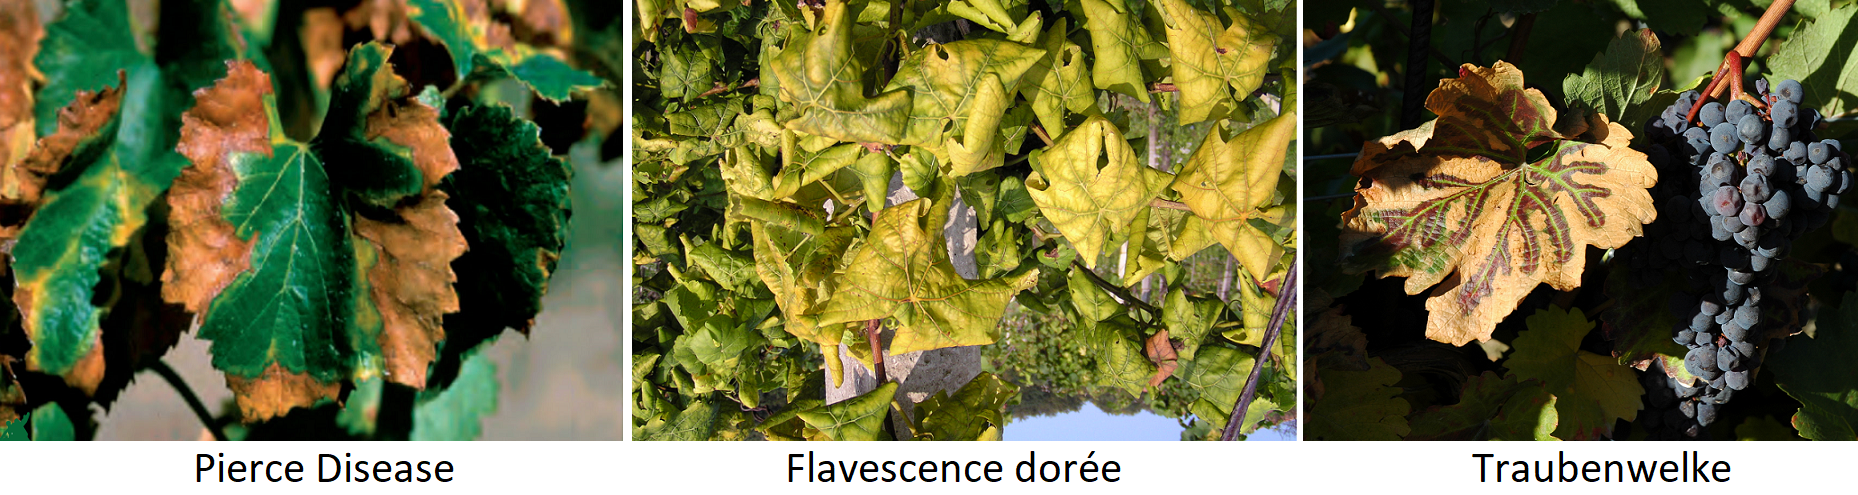 Vineyard enemies - Mushrooms: Pierce Disease, Flavescence Dorée, Grape Wither